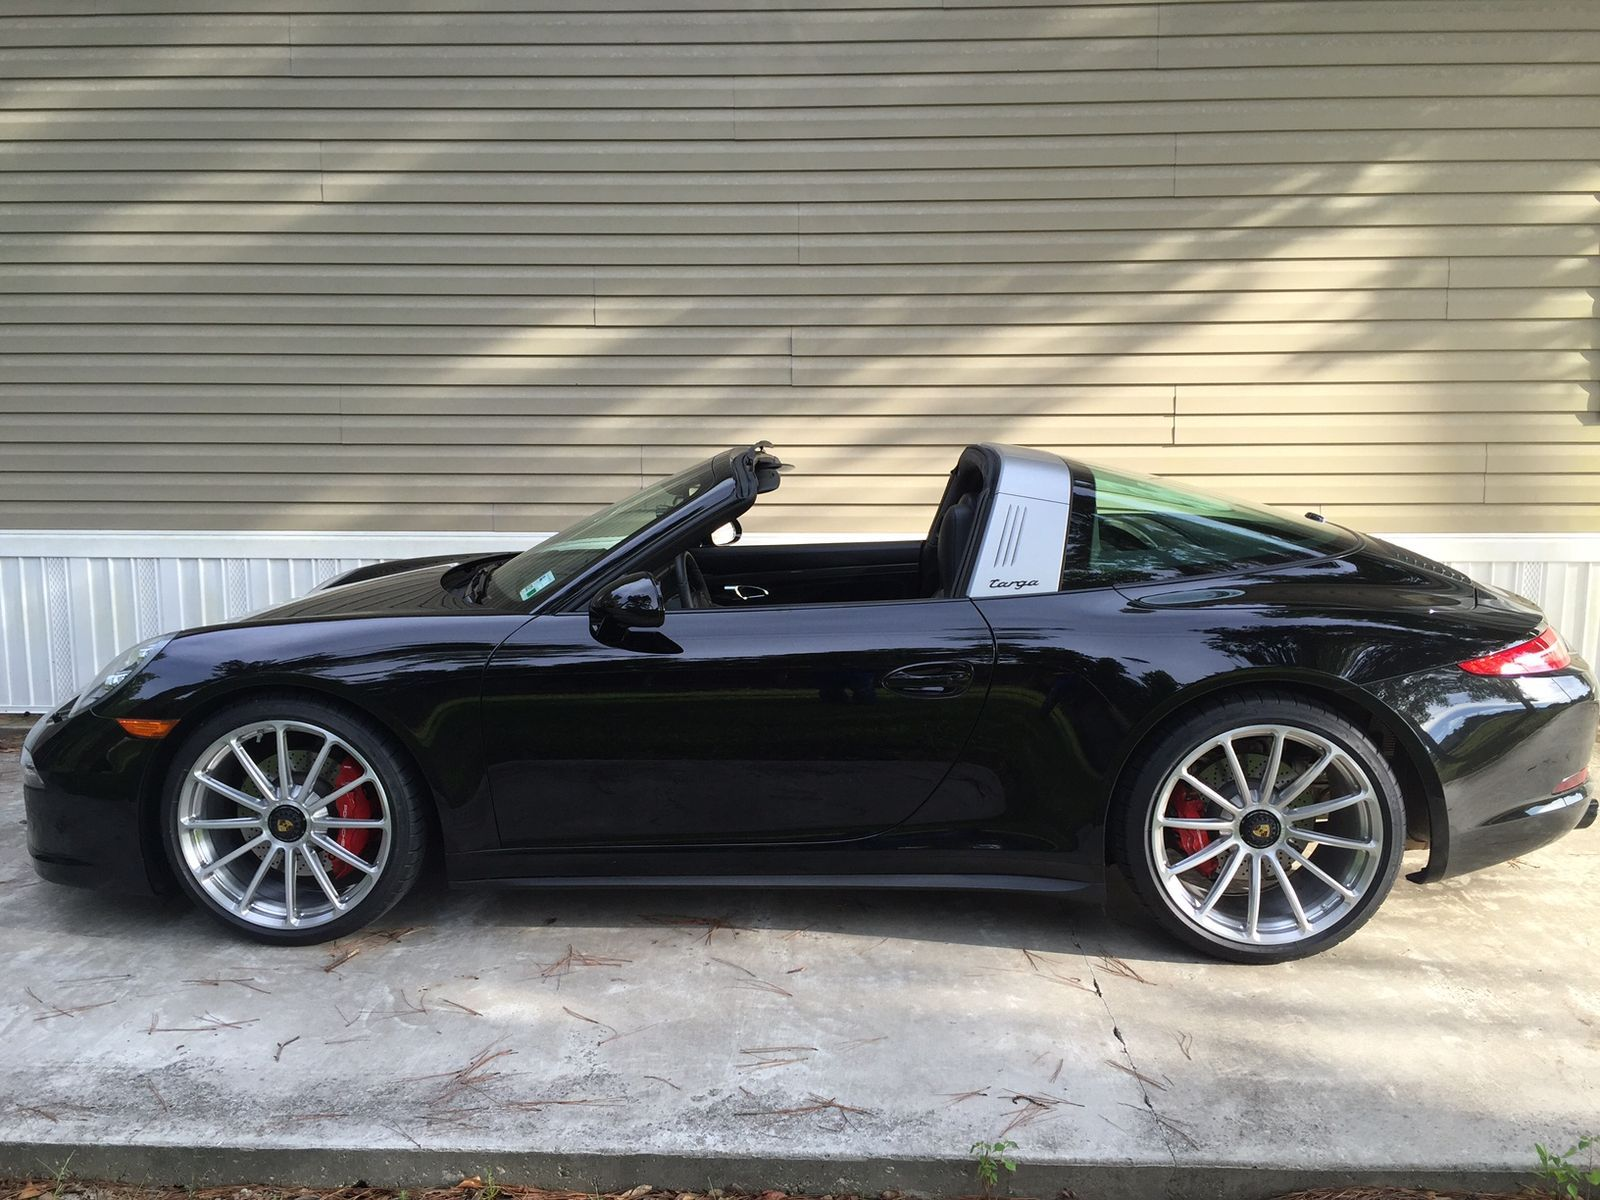 2016 Porsche 911 | Jim Brown's Porsche 991 Targa on Forgeline One Piece Forged Monoblock GT1 Wheels